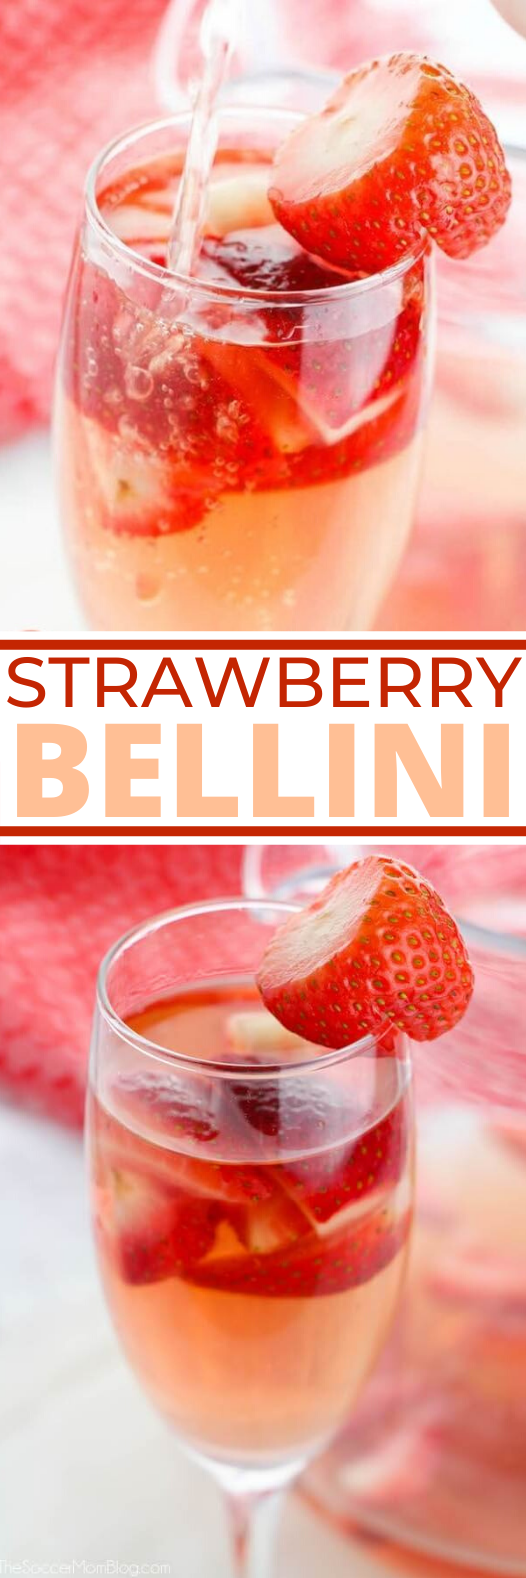 Strawberry Shortcake Bellini #party #drink #brunch #recipes #cocktails